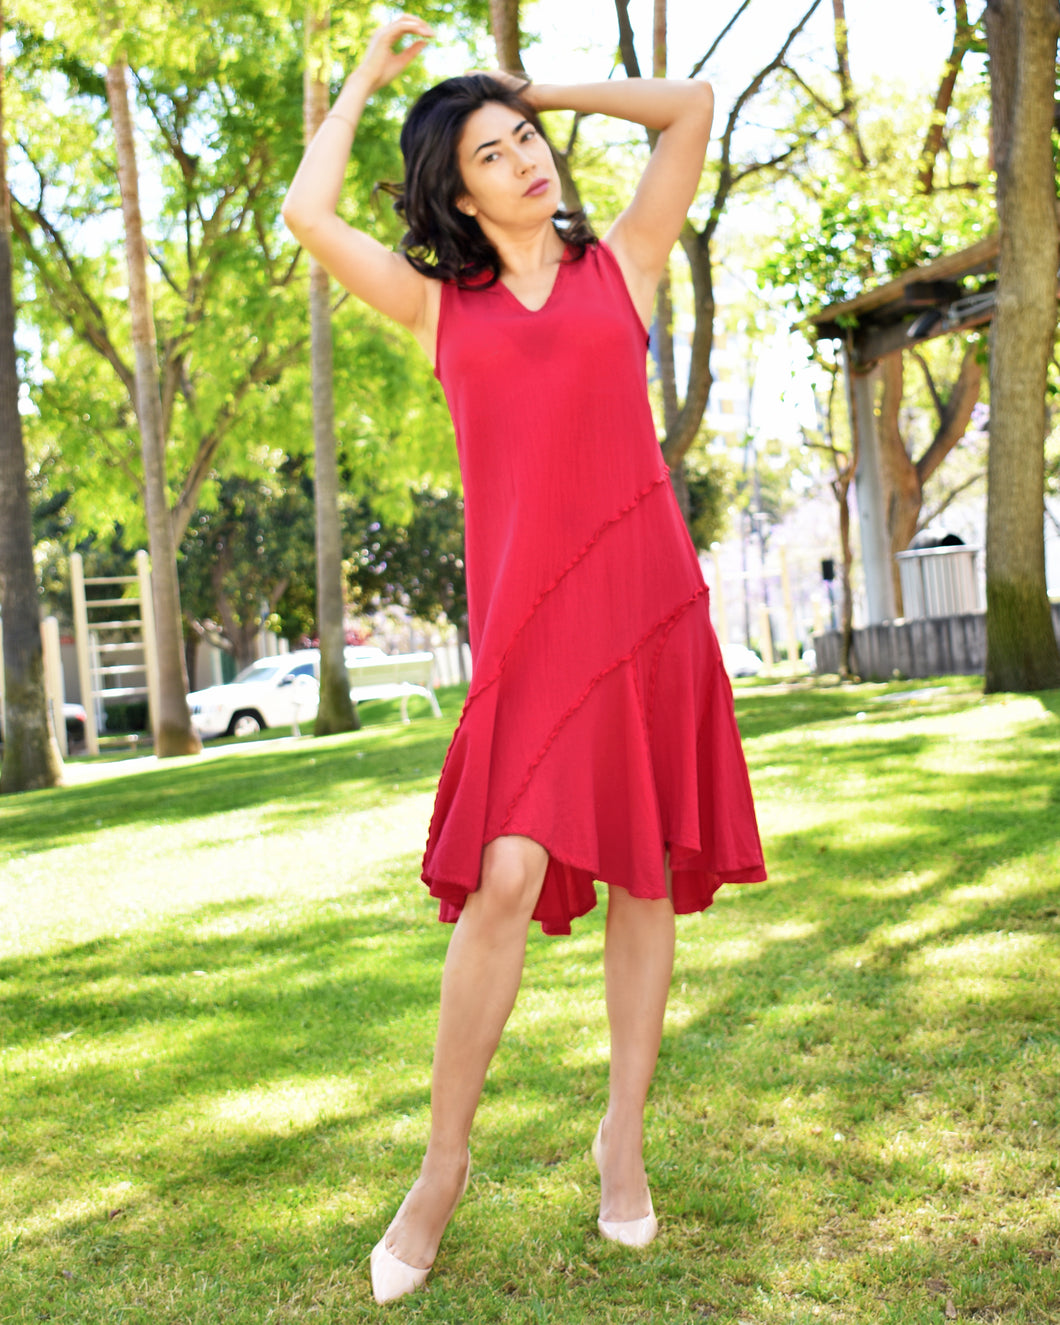 Oh My Gauze 100% Cotton Red Dress in Tabasco Crimson